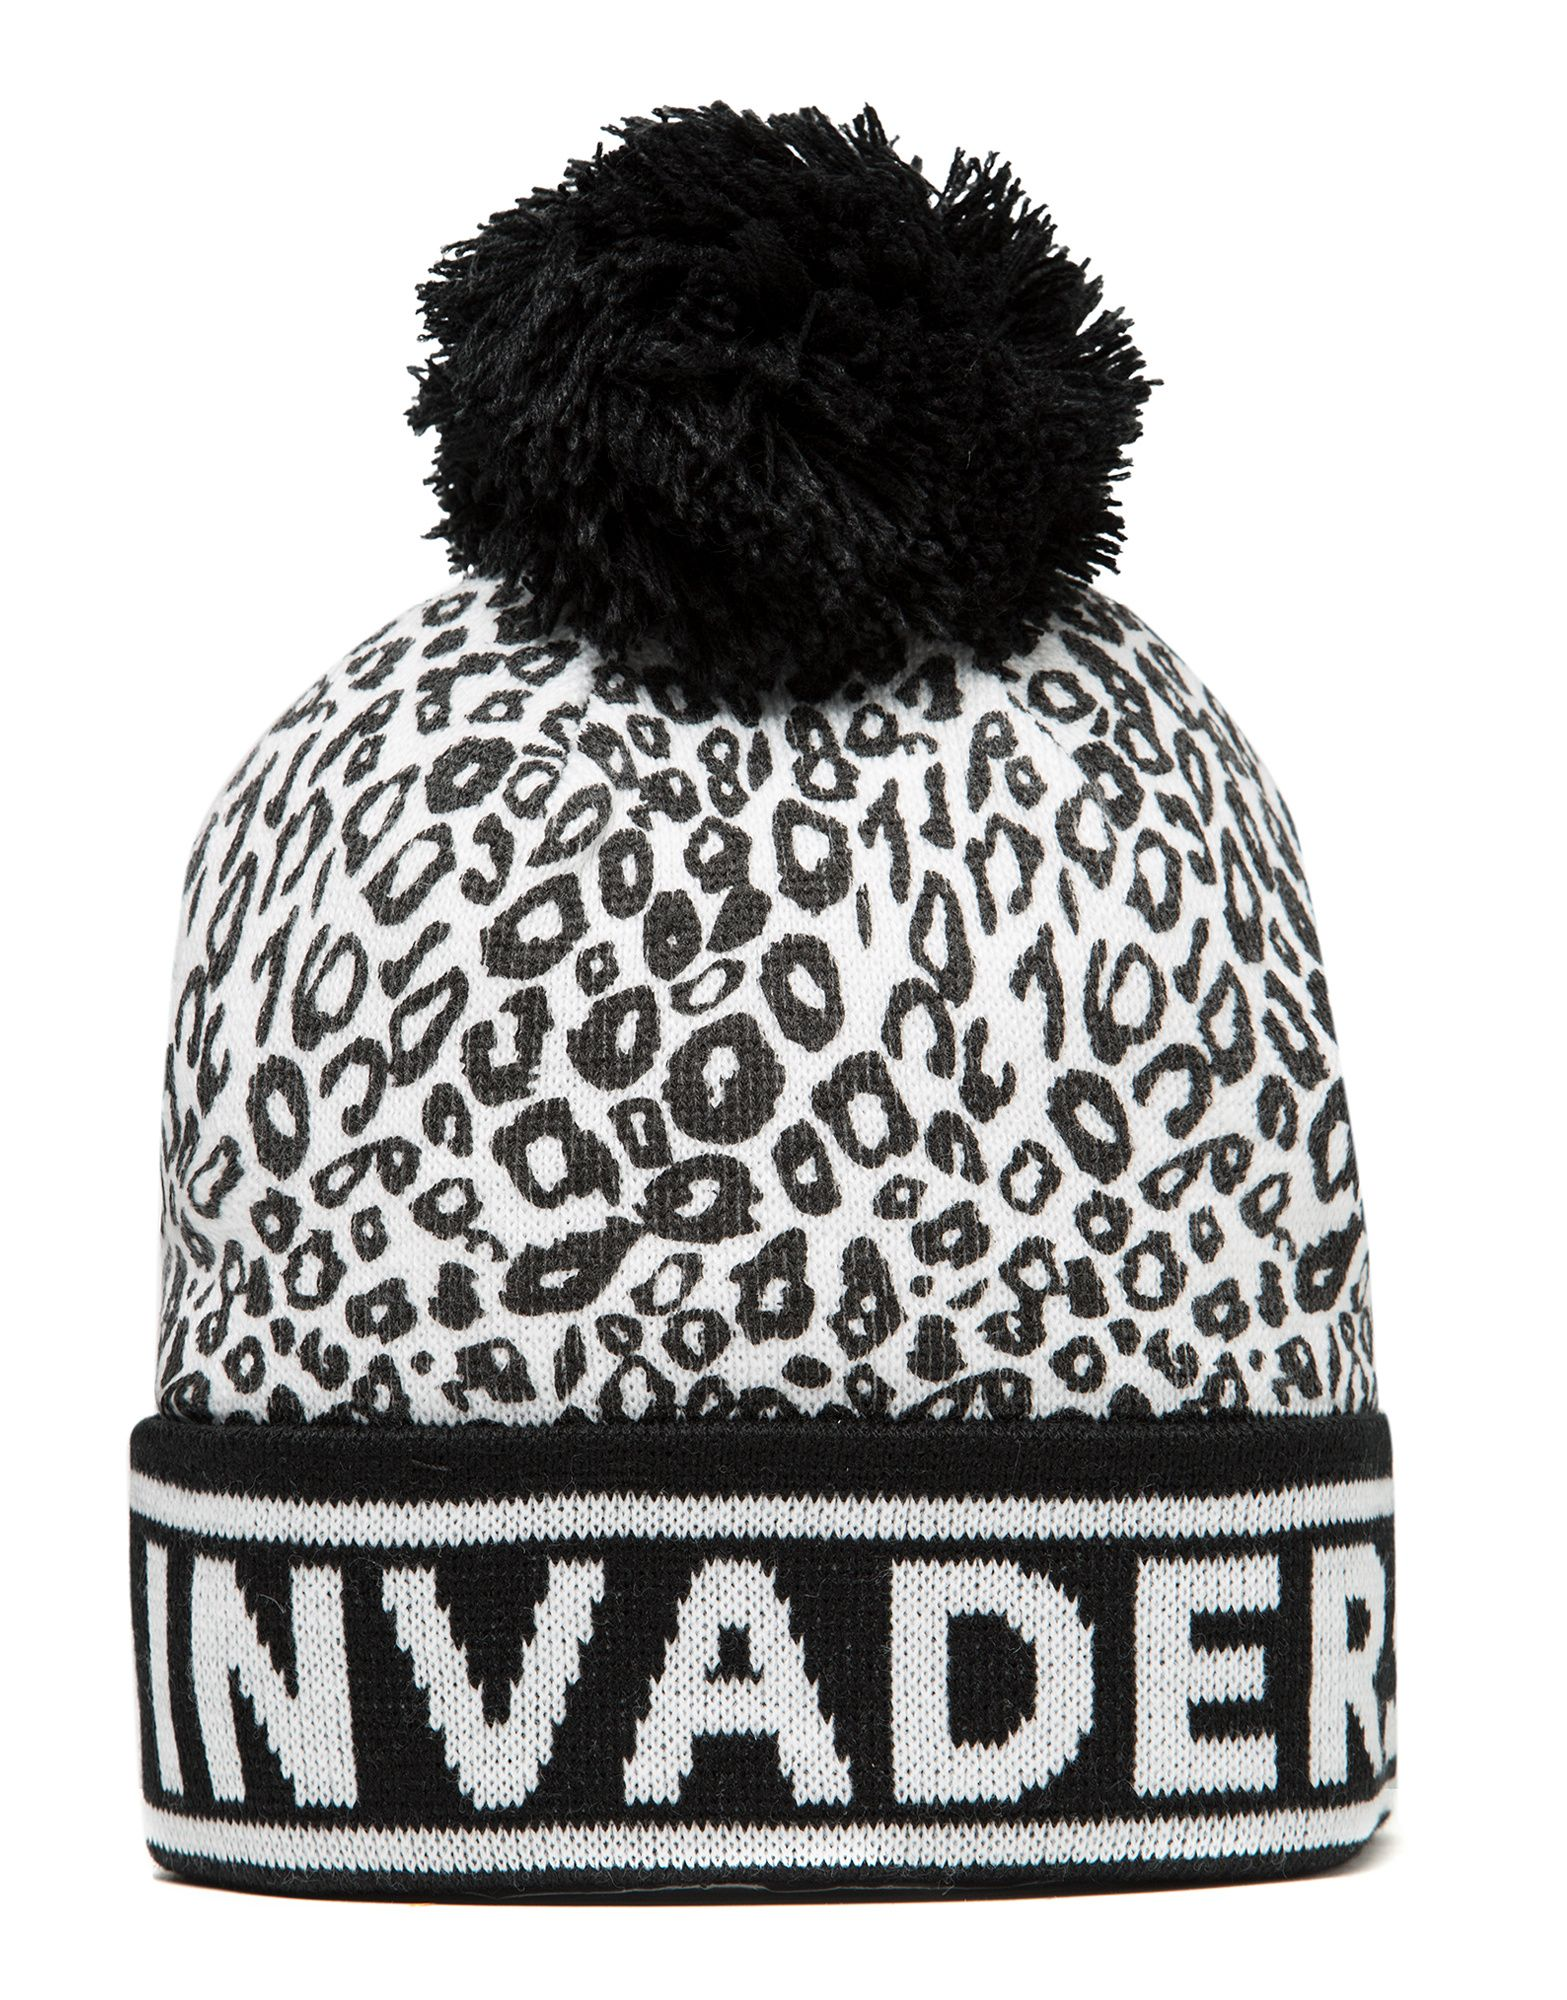 Beck and Hersey Invaders Bobble Hat